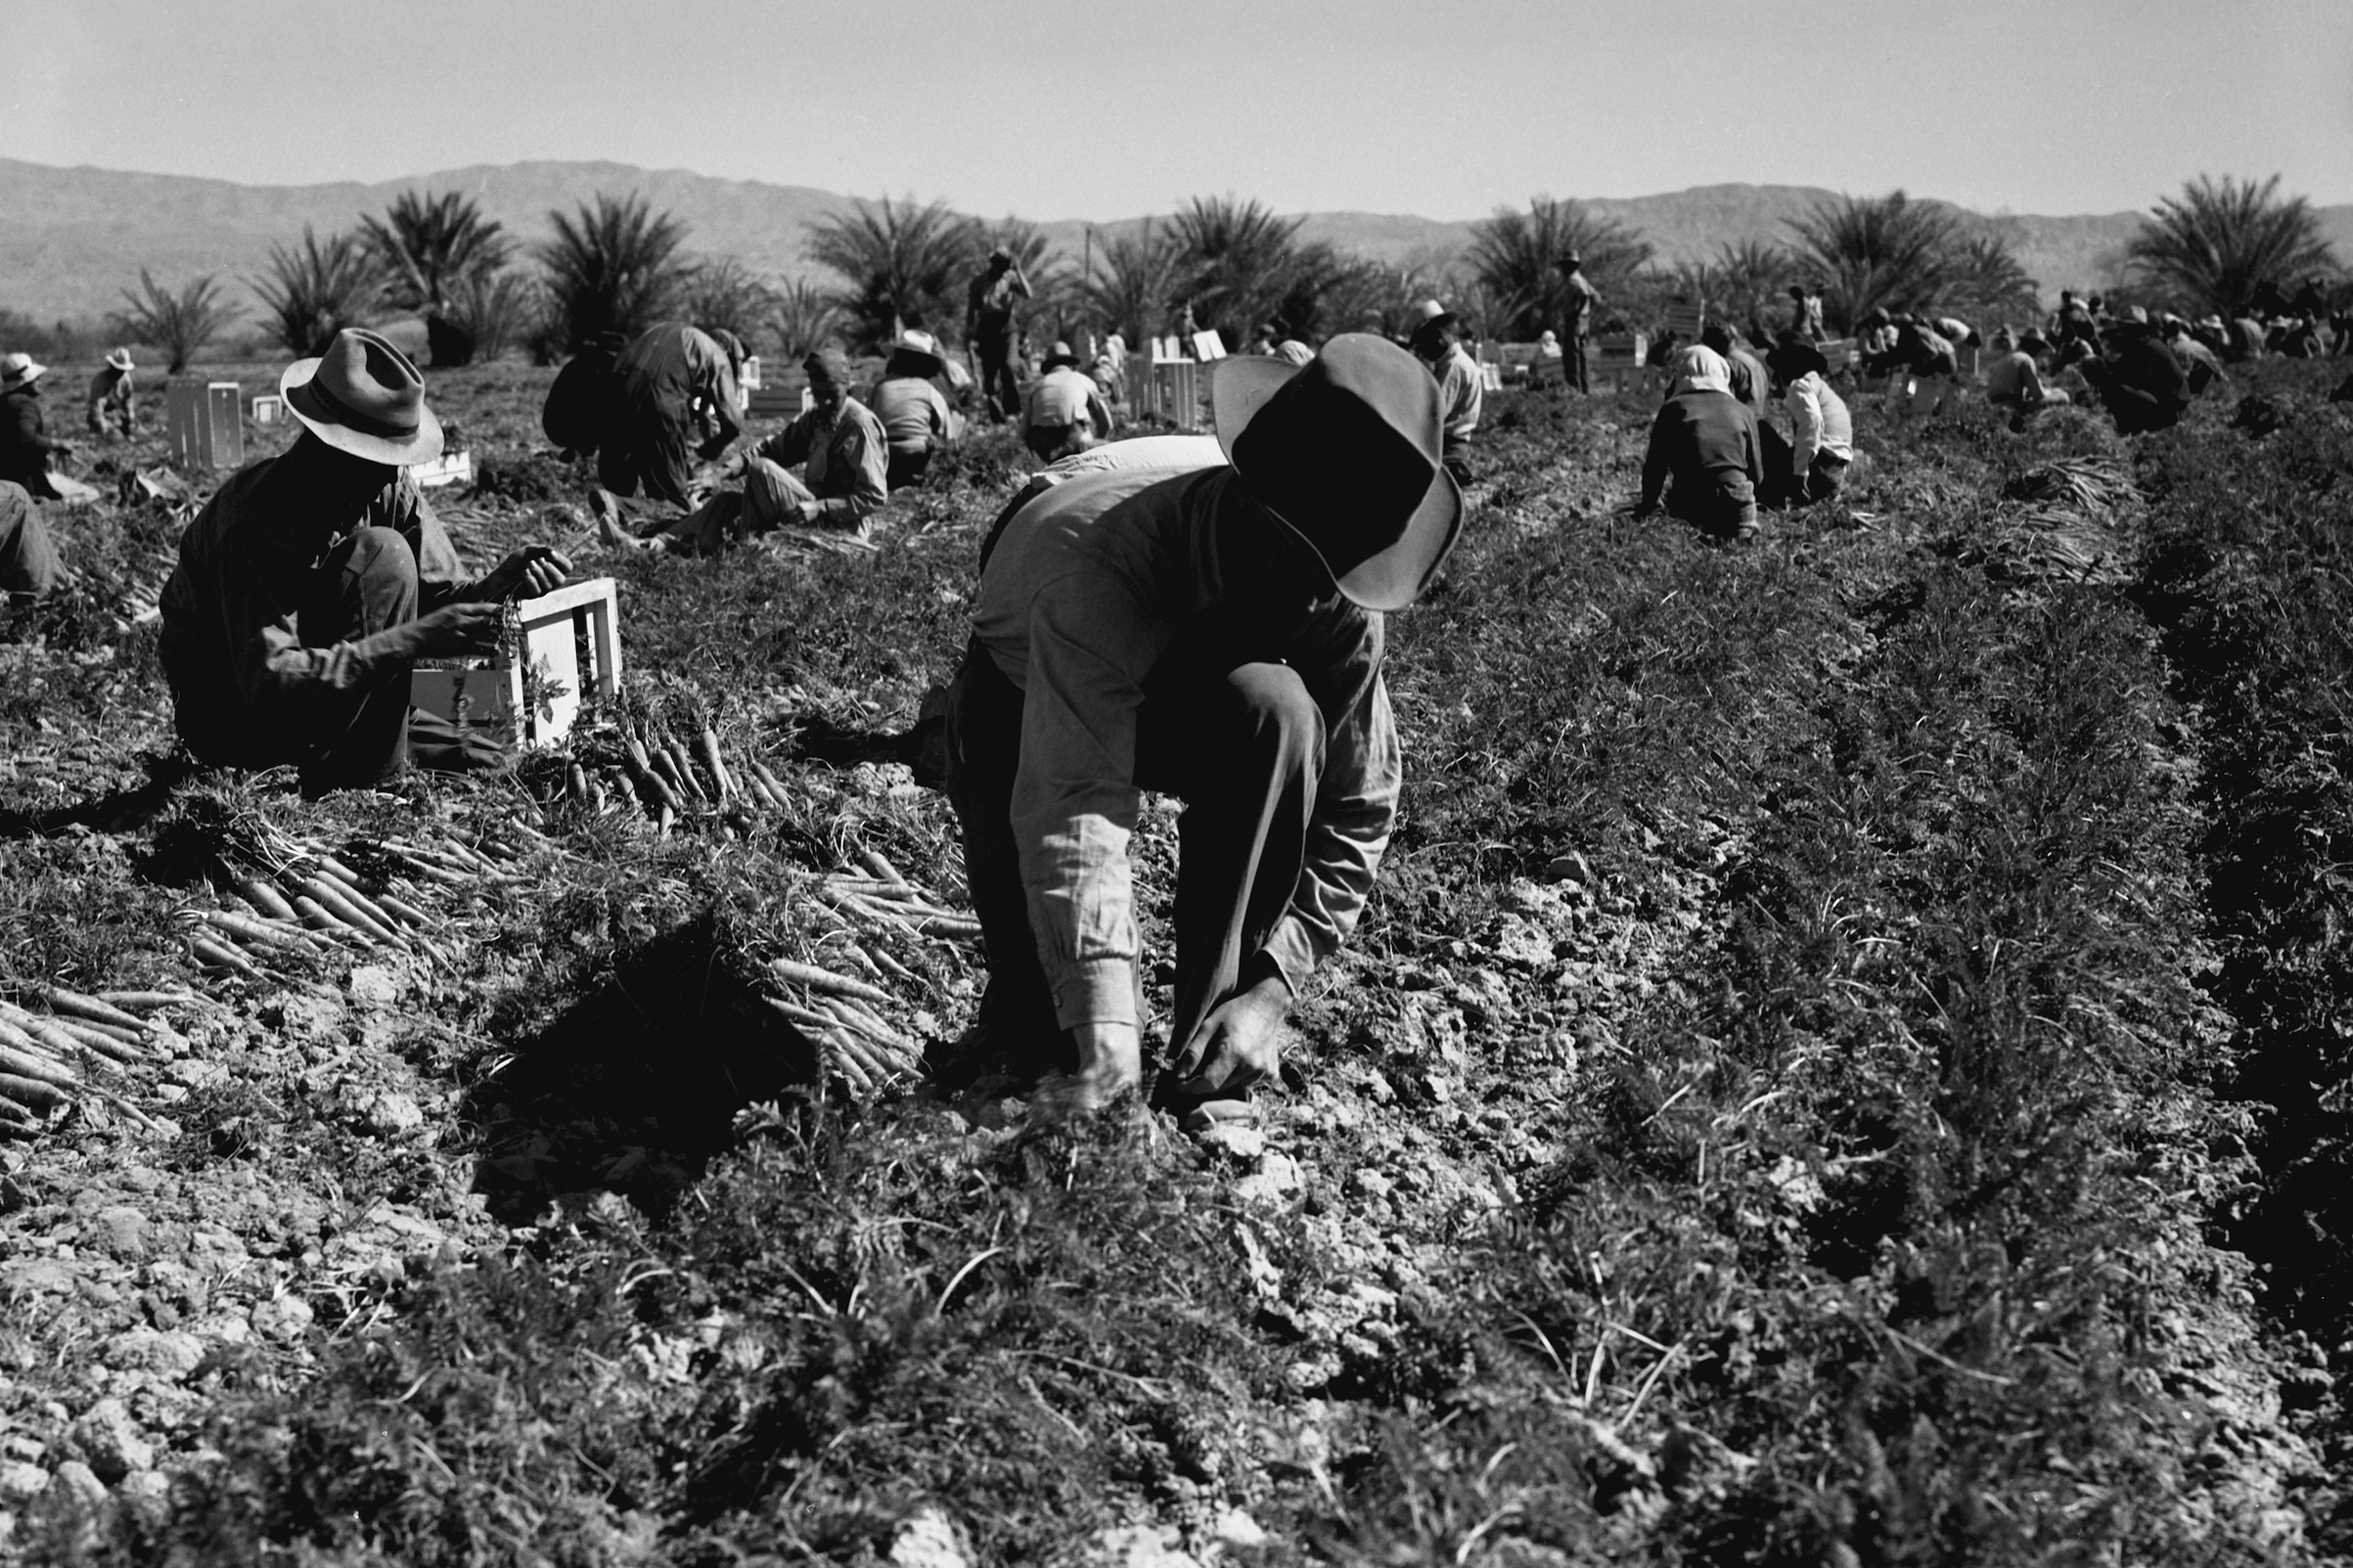 Carrot pullers from Texas, Oklahoma, Missouri, Arkansas and Mexico, at work in California in 1937